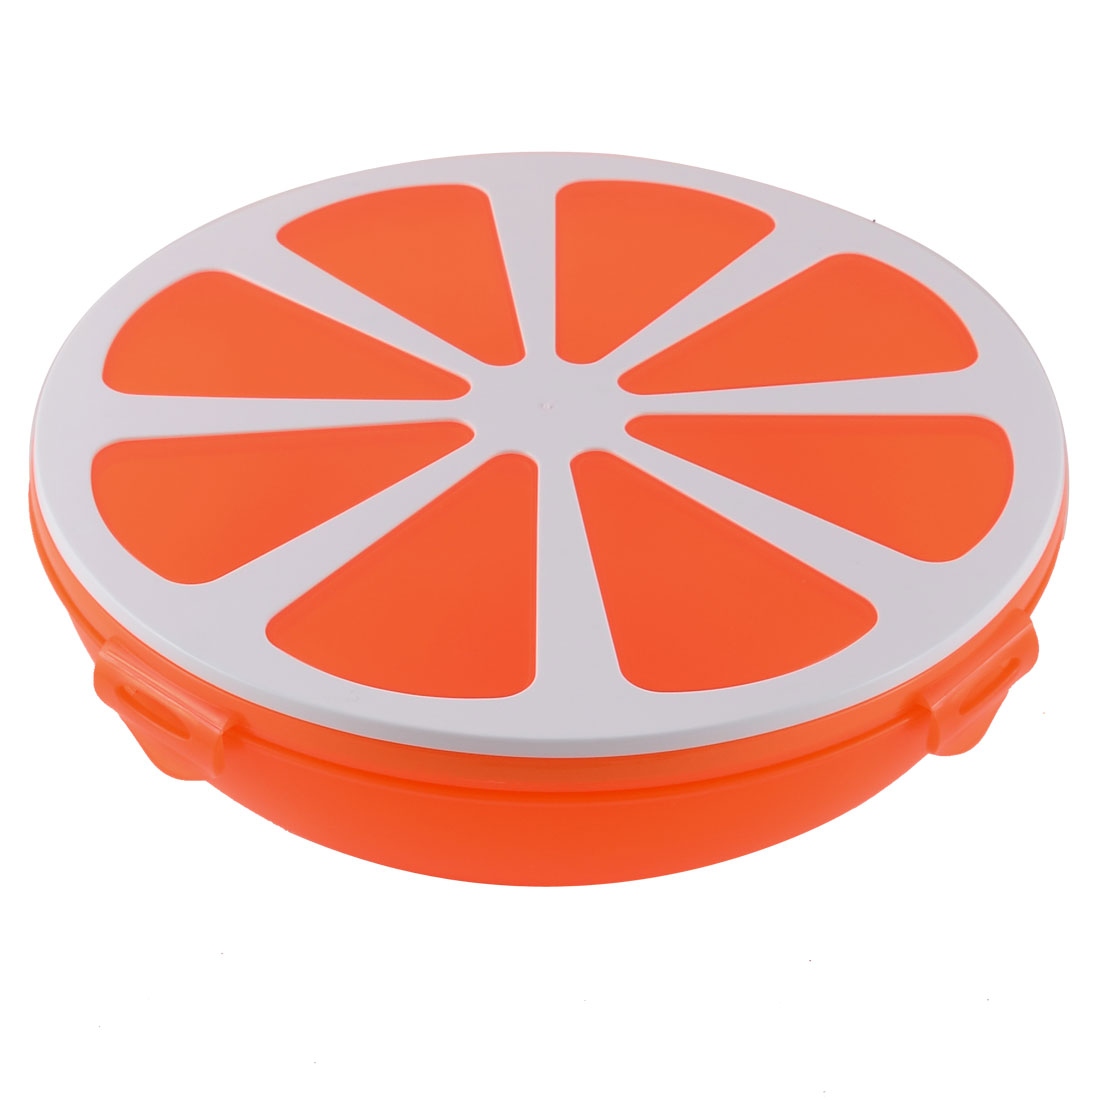 Family Household Camping Plastic Orange Shaped 4 Cell Sealed Candy Nut Dessert Box Storage